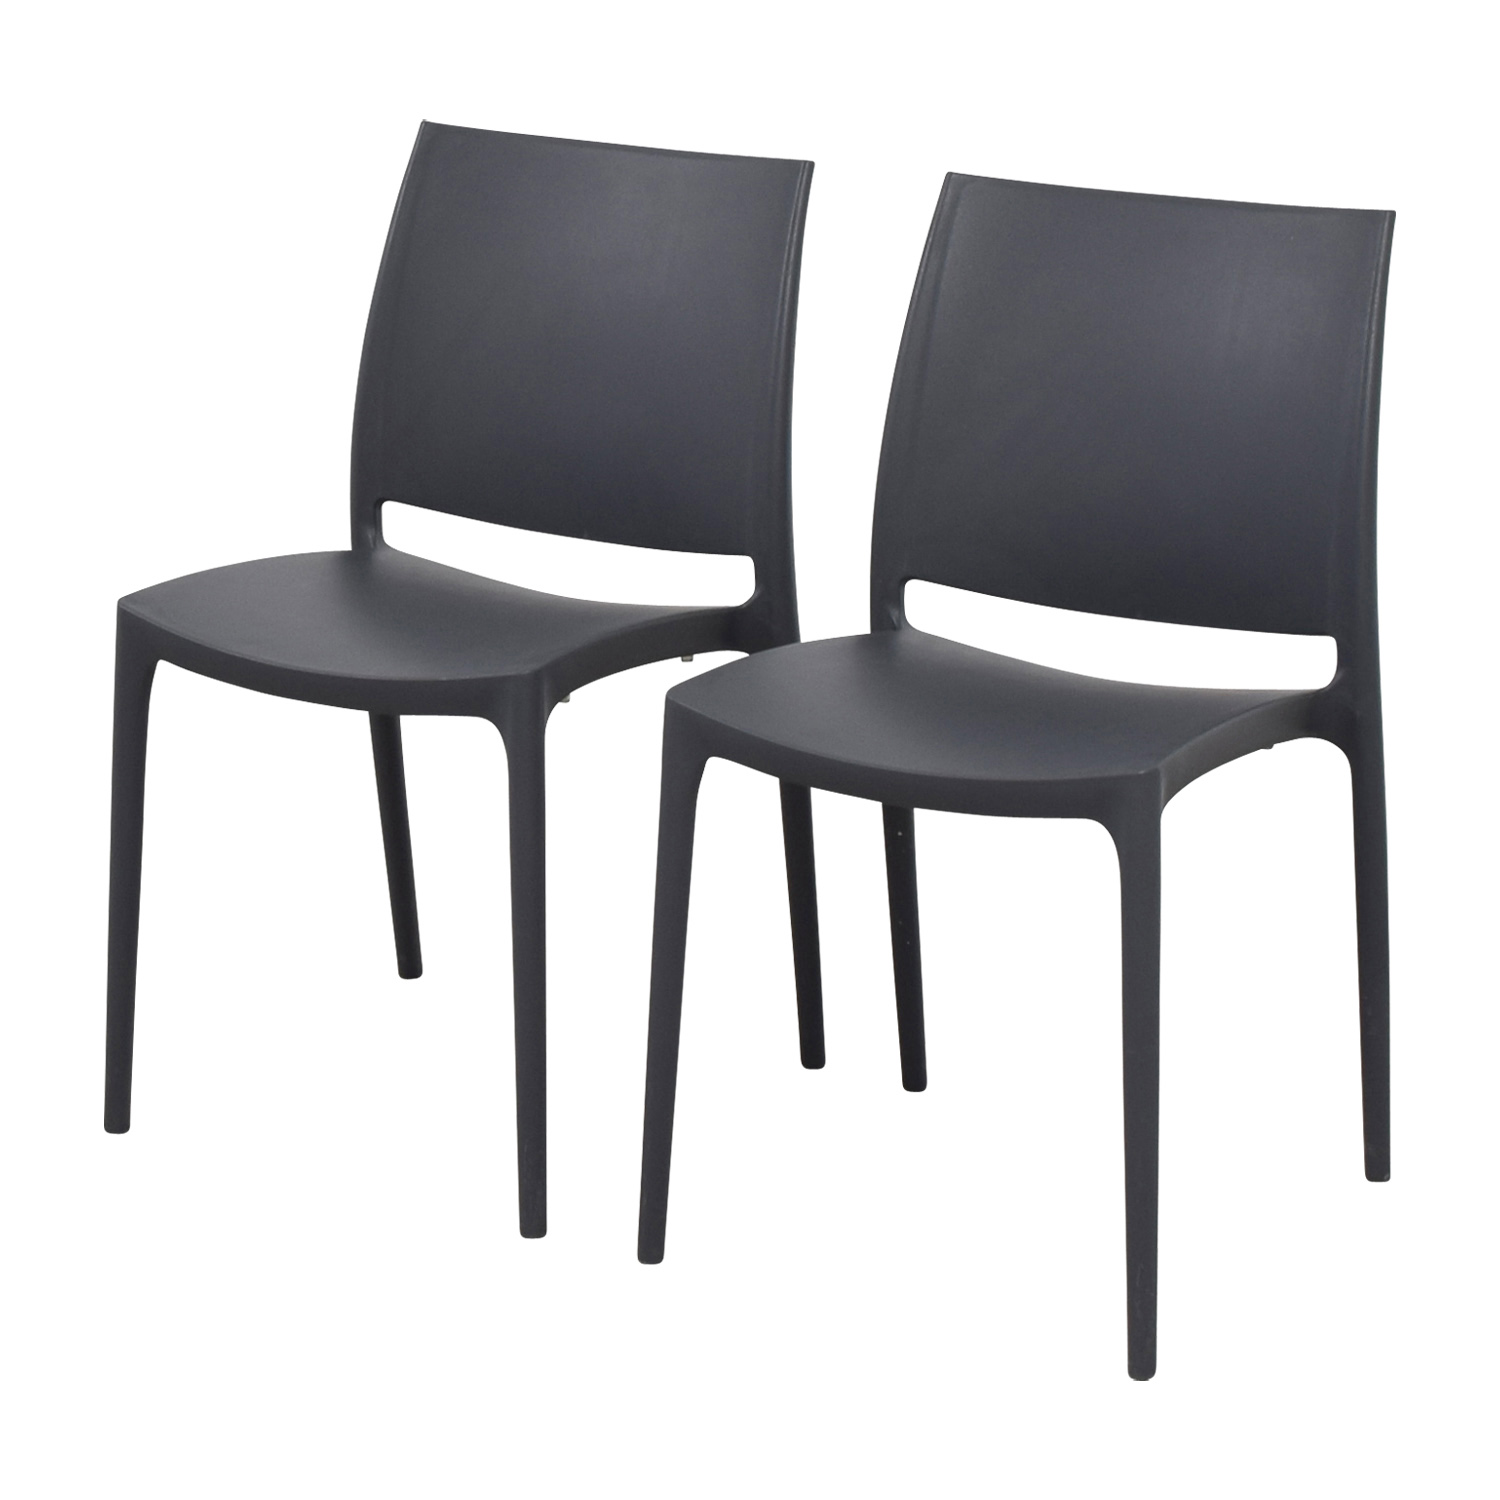 77 Off Grey Molded Plastic Chairs Chairs